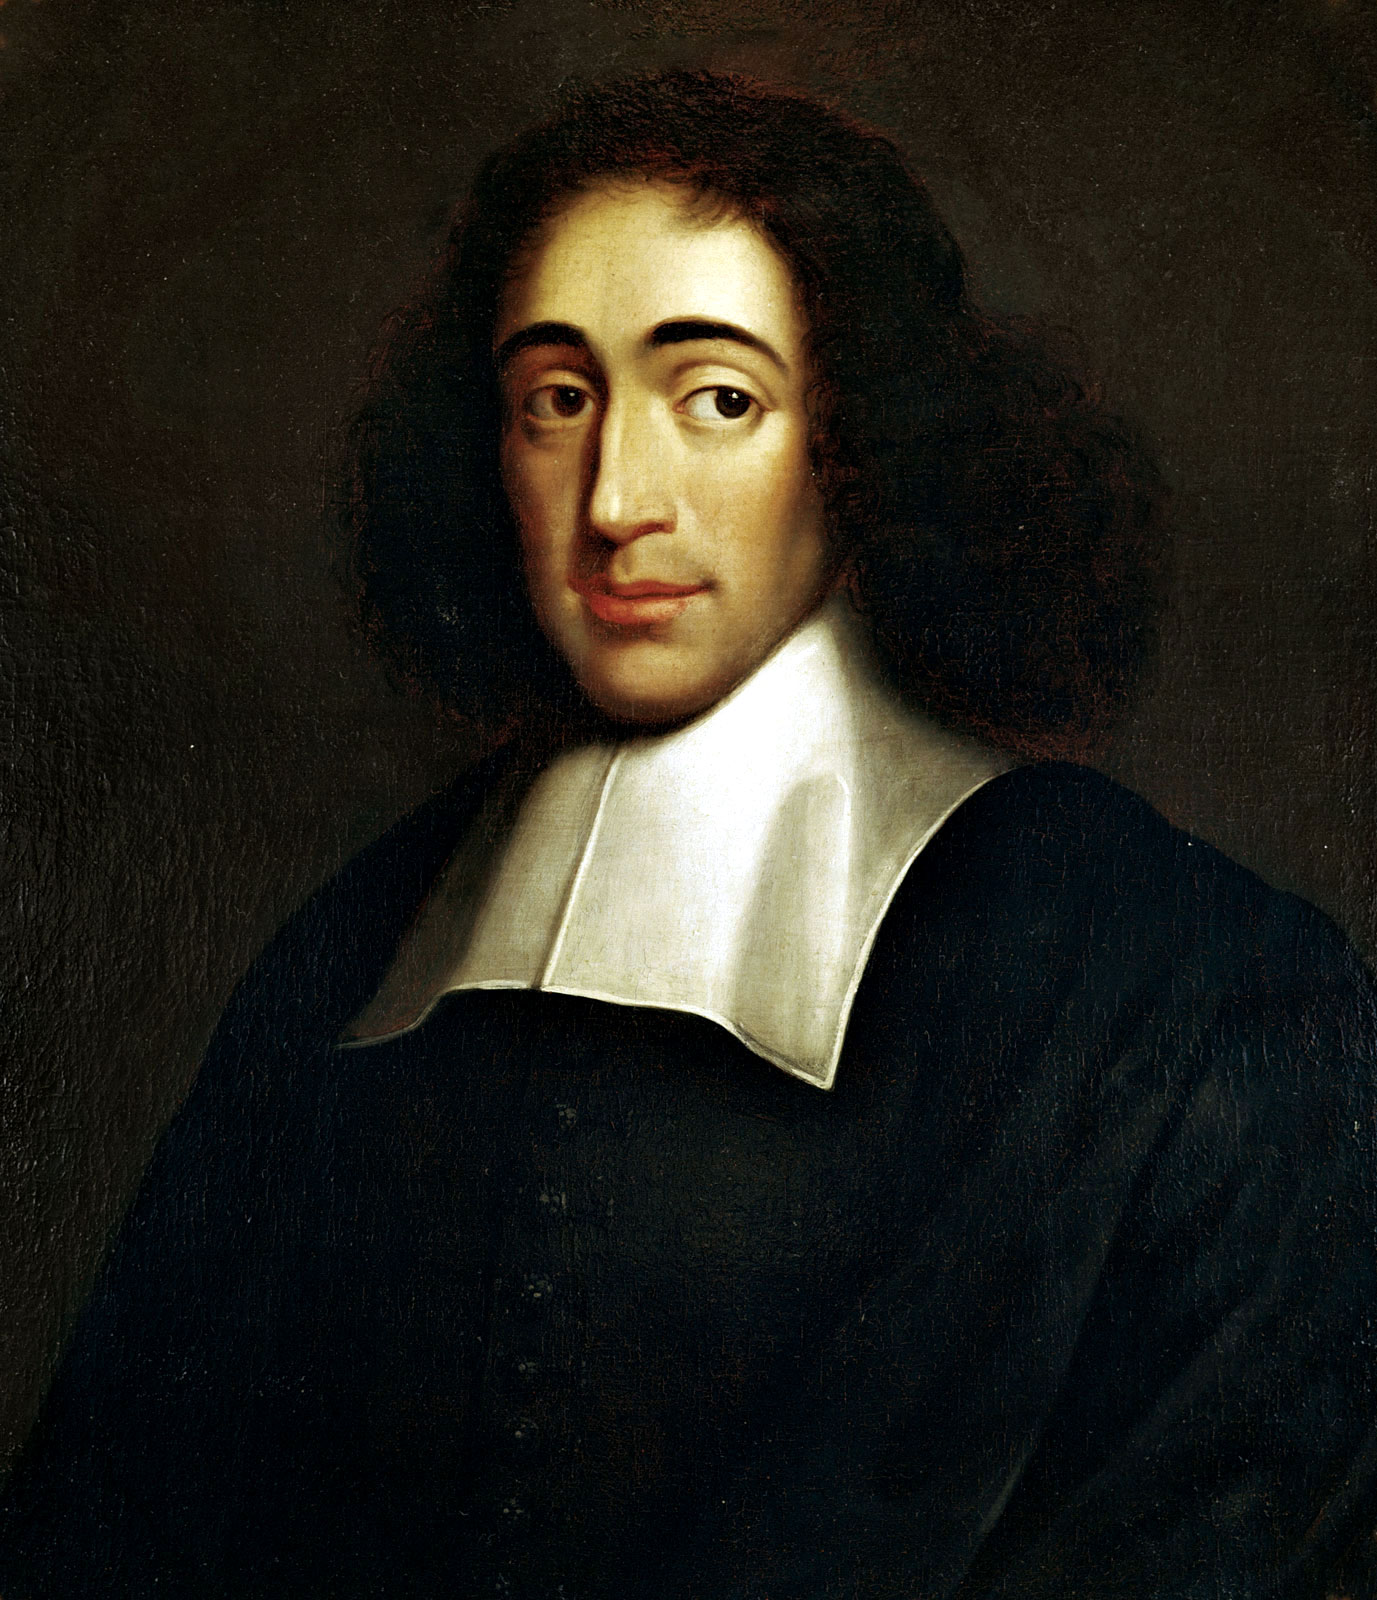 baruch spinoza from wikipedia